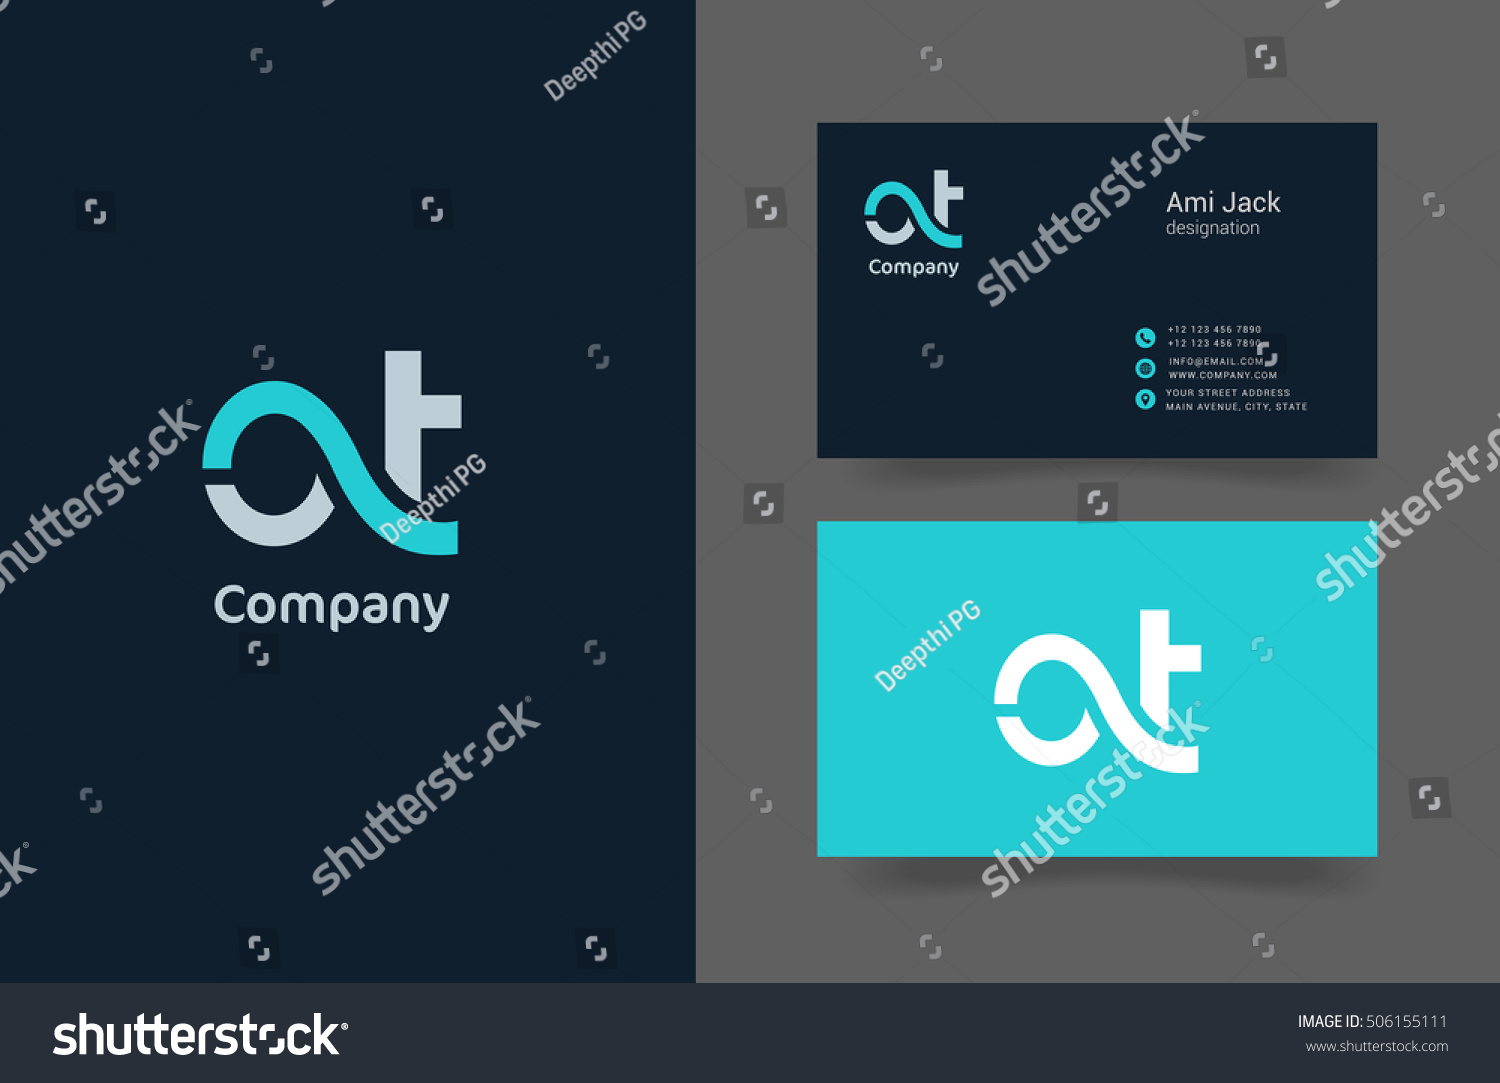 Delighted 1 Inch Hexagon Template Tiny 1 Page Resumes Examples Round 1.25 Button Template 10 Best Resumes Old 10 Tips To Making A Resume Coloured100 Dollar Bill Template O T Letter Logo Business Card Stock Vector 506155111   Shutterstock